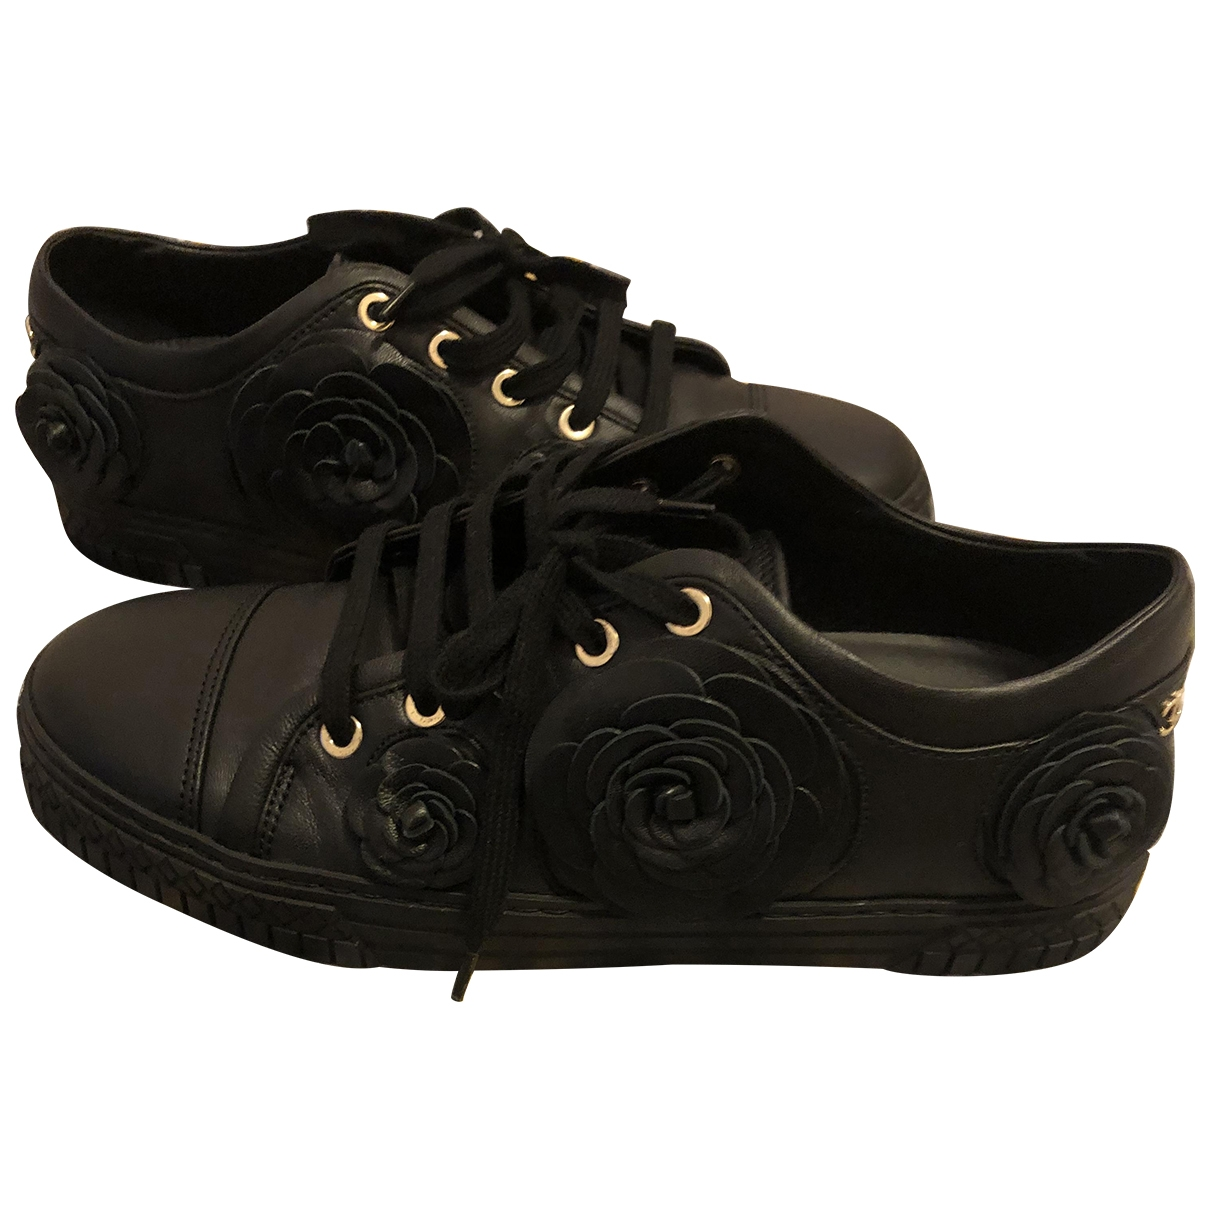 Chanel \N Black Leather Trainers for Women 36.5 EU